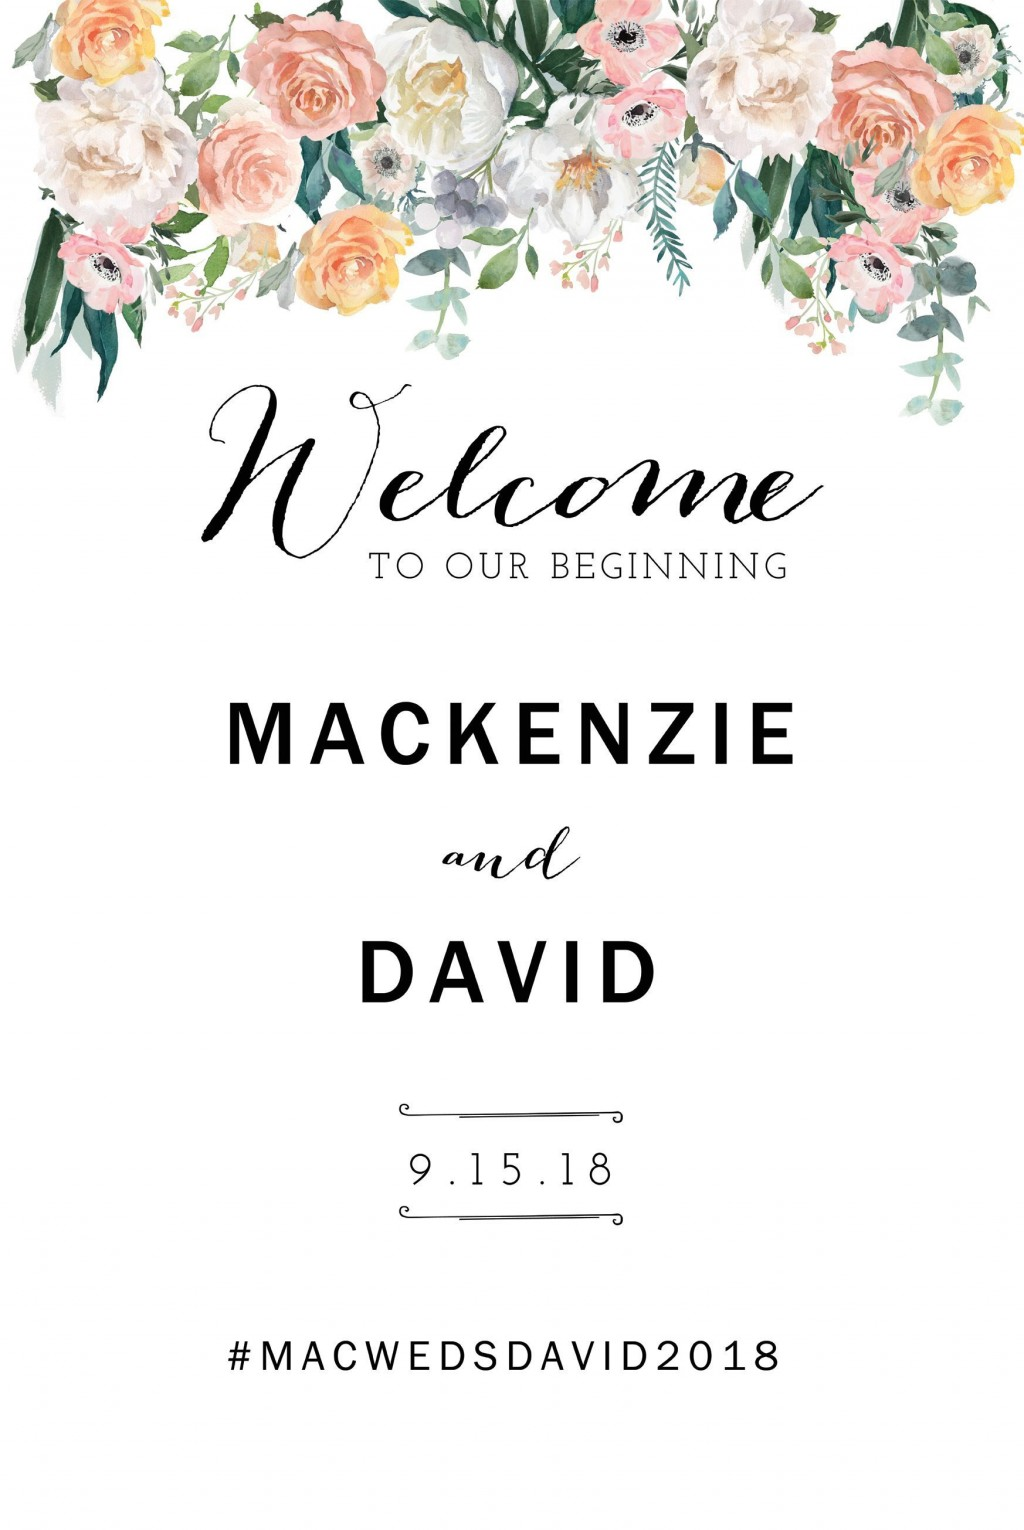 001 Phenomenal Wedding Welcome Sign Template Free High Definition Large